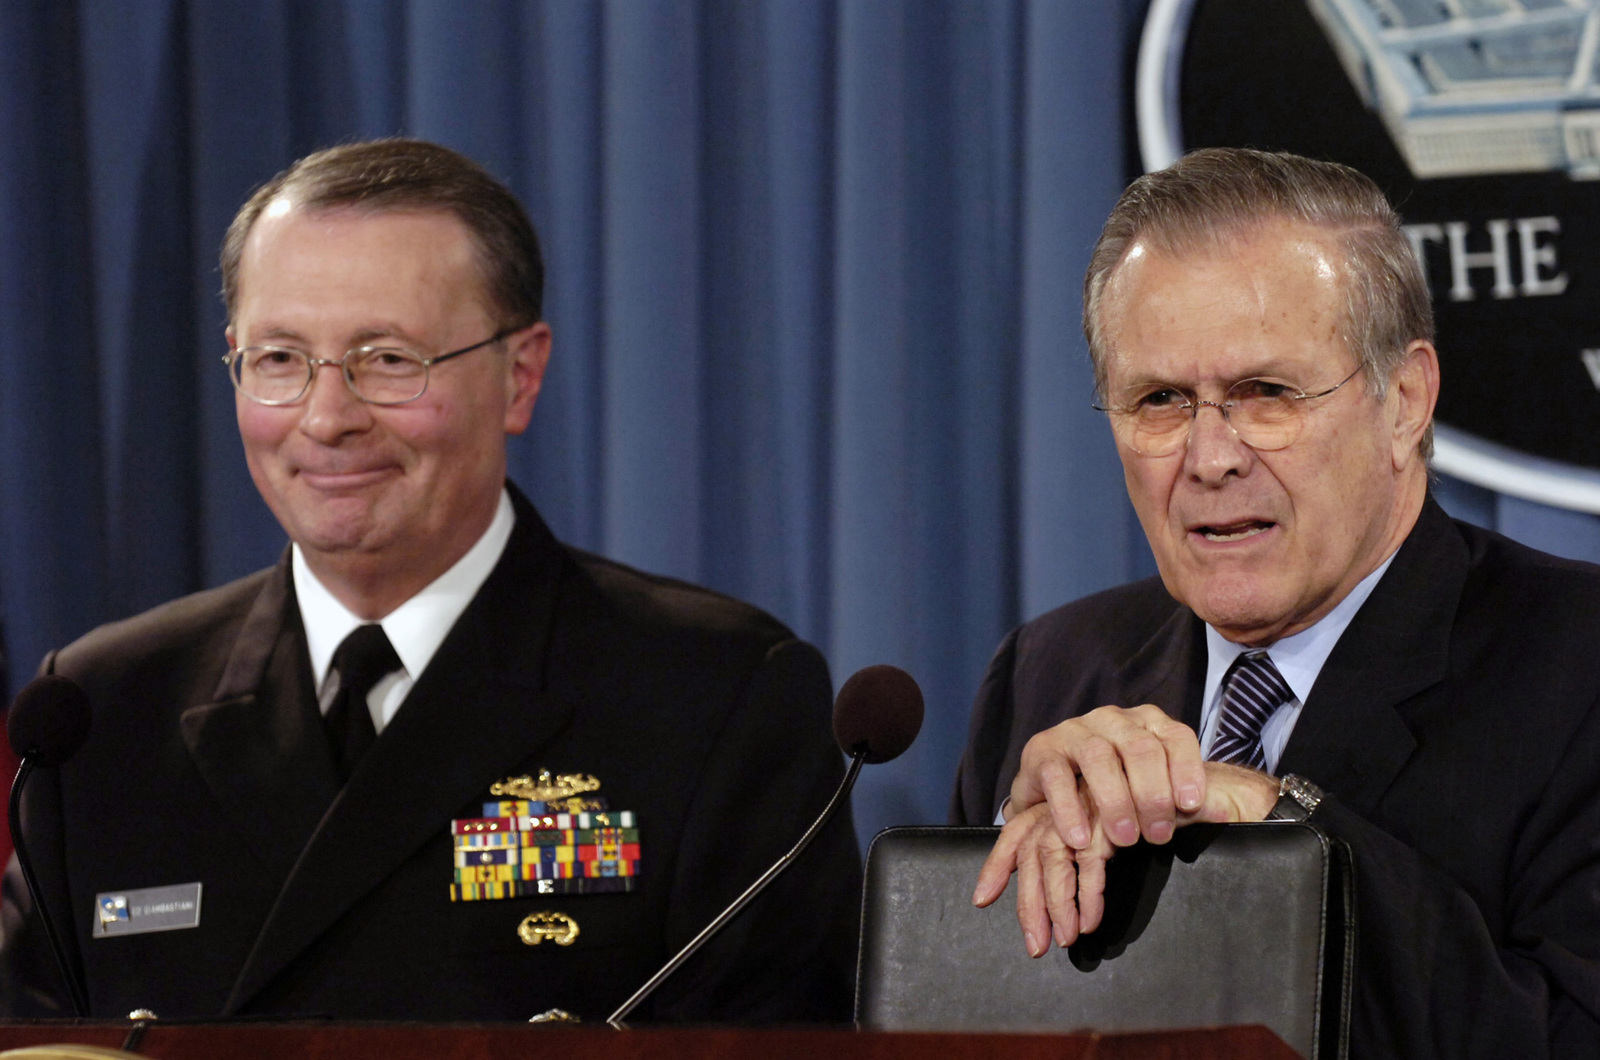 The Honorable Donald H. Rumsfeld (right), U.S. Secretary of Defense, and U.S. Navy Adm. Edmund G. Giambastiani, Jr., Vice Chairman of the Joint Chiefs of STAFF, respond to questions at a press conference at the Pentagon, Washington, D.C., Feb. 1, 2006.  (DoD photo by PETTY Officer 1ST Class Chad J. McNeeley) (Released)